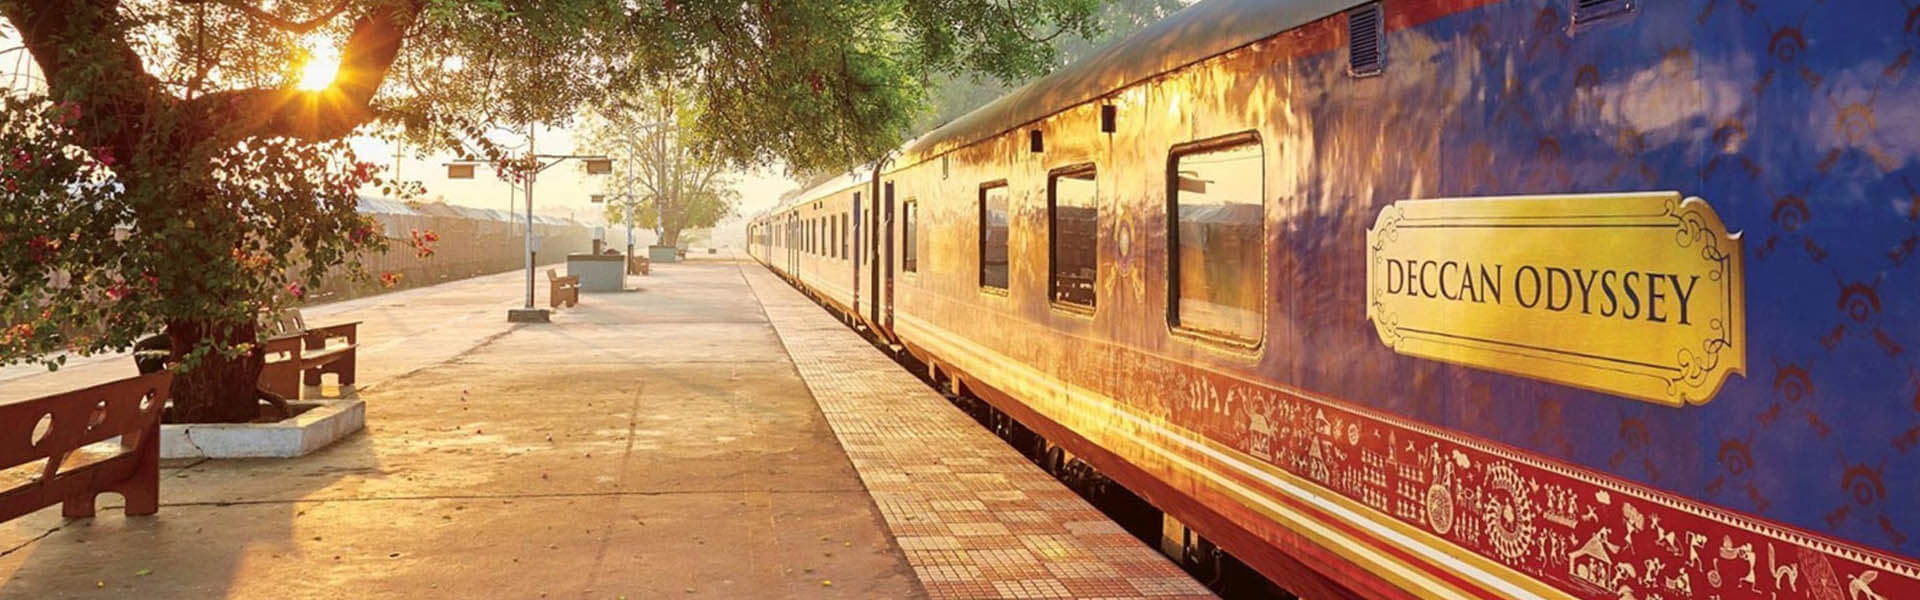 Deccan Odyssey Indian Odyssey,luxury train ride,luxury train india